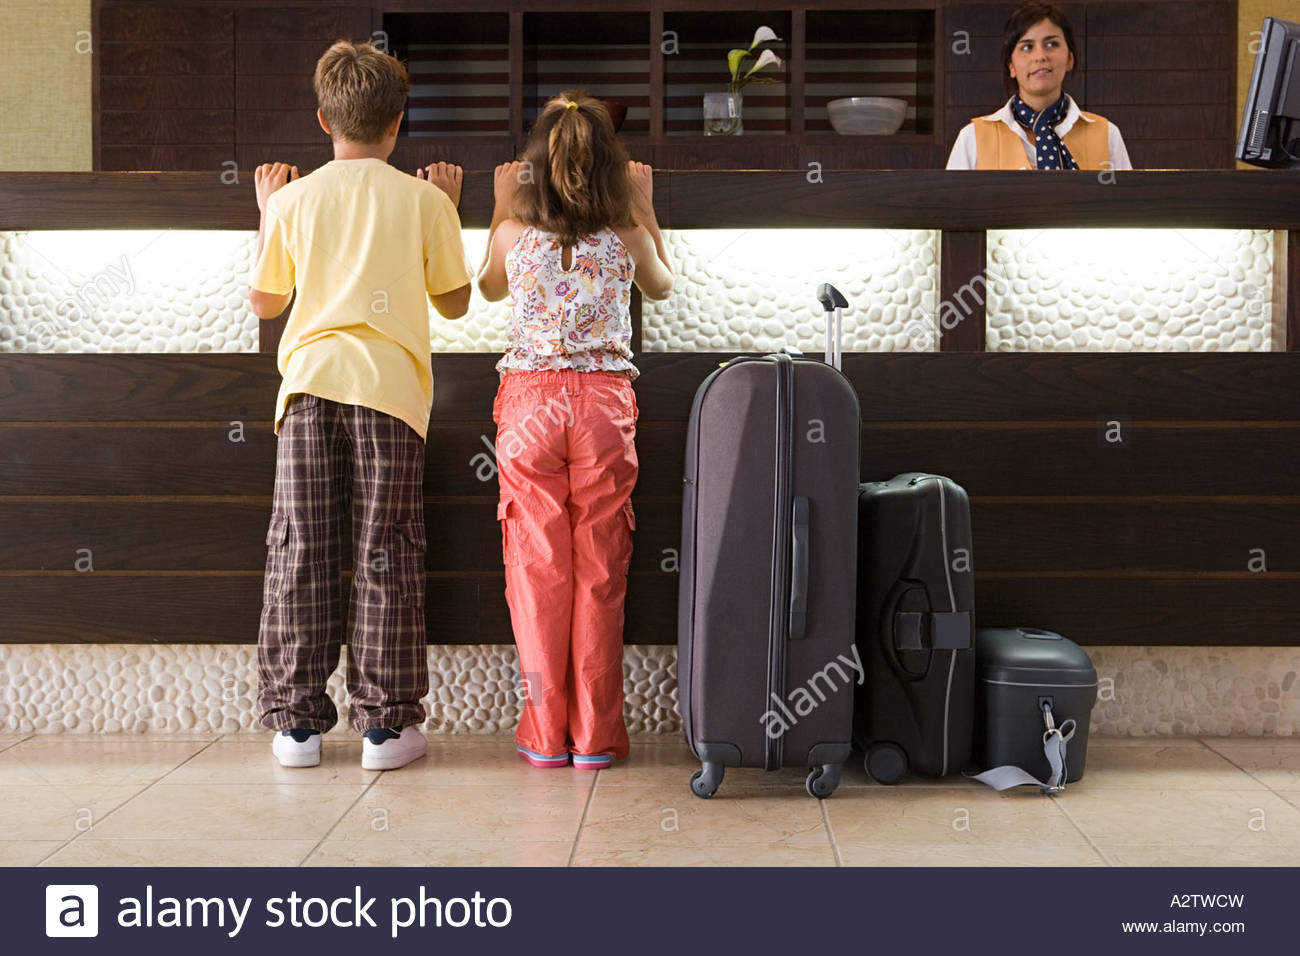 Children at a hotel reception - Stock Image